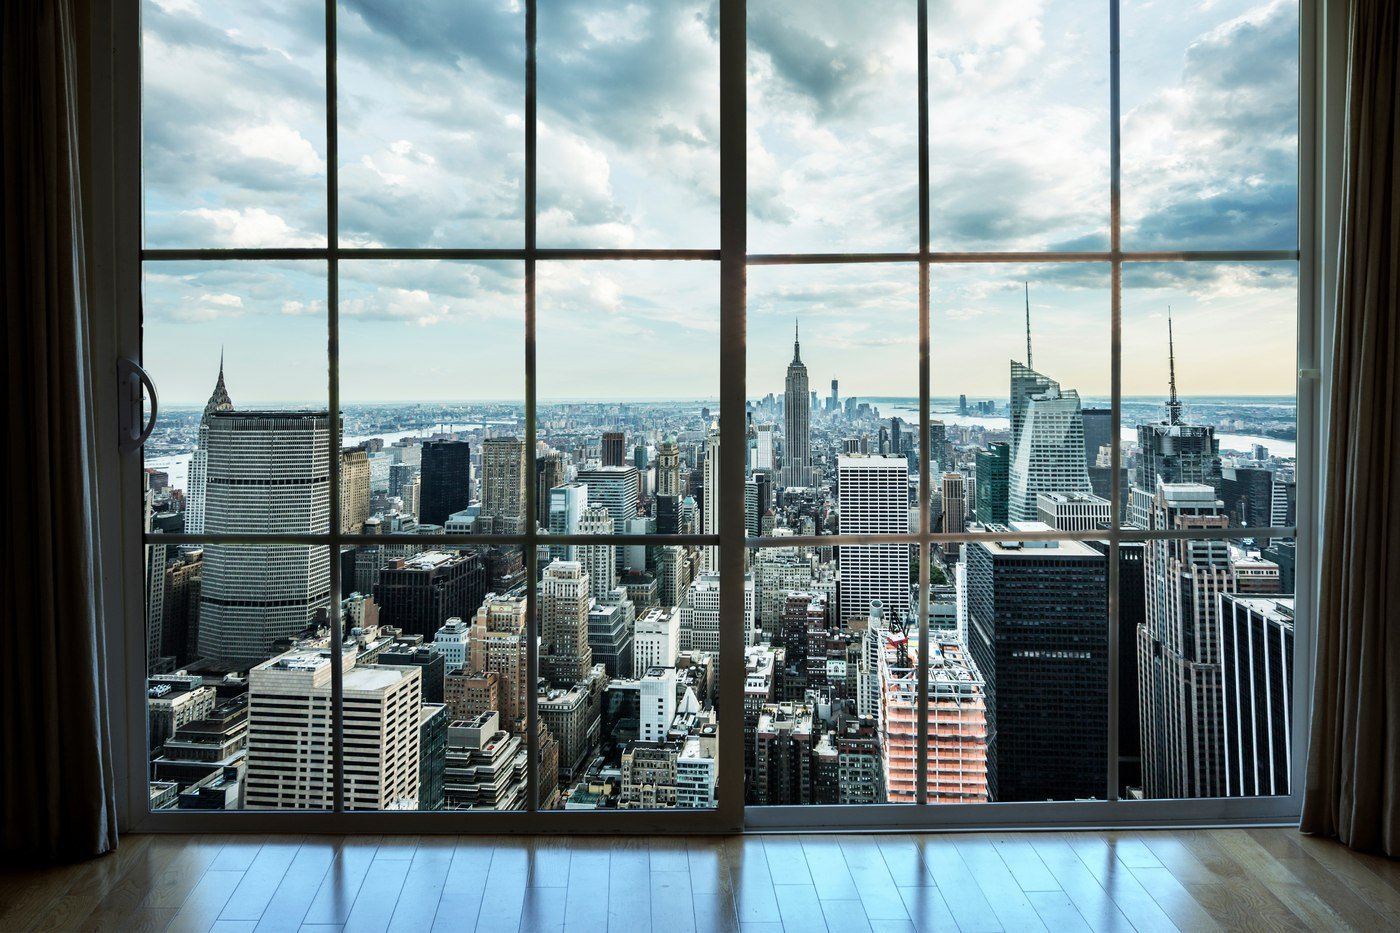 Apartment Building Management Companies Nyc glut of apartment development in new york puts stress on owners